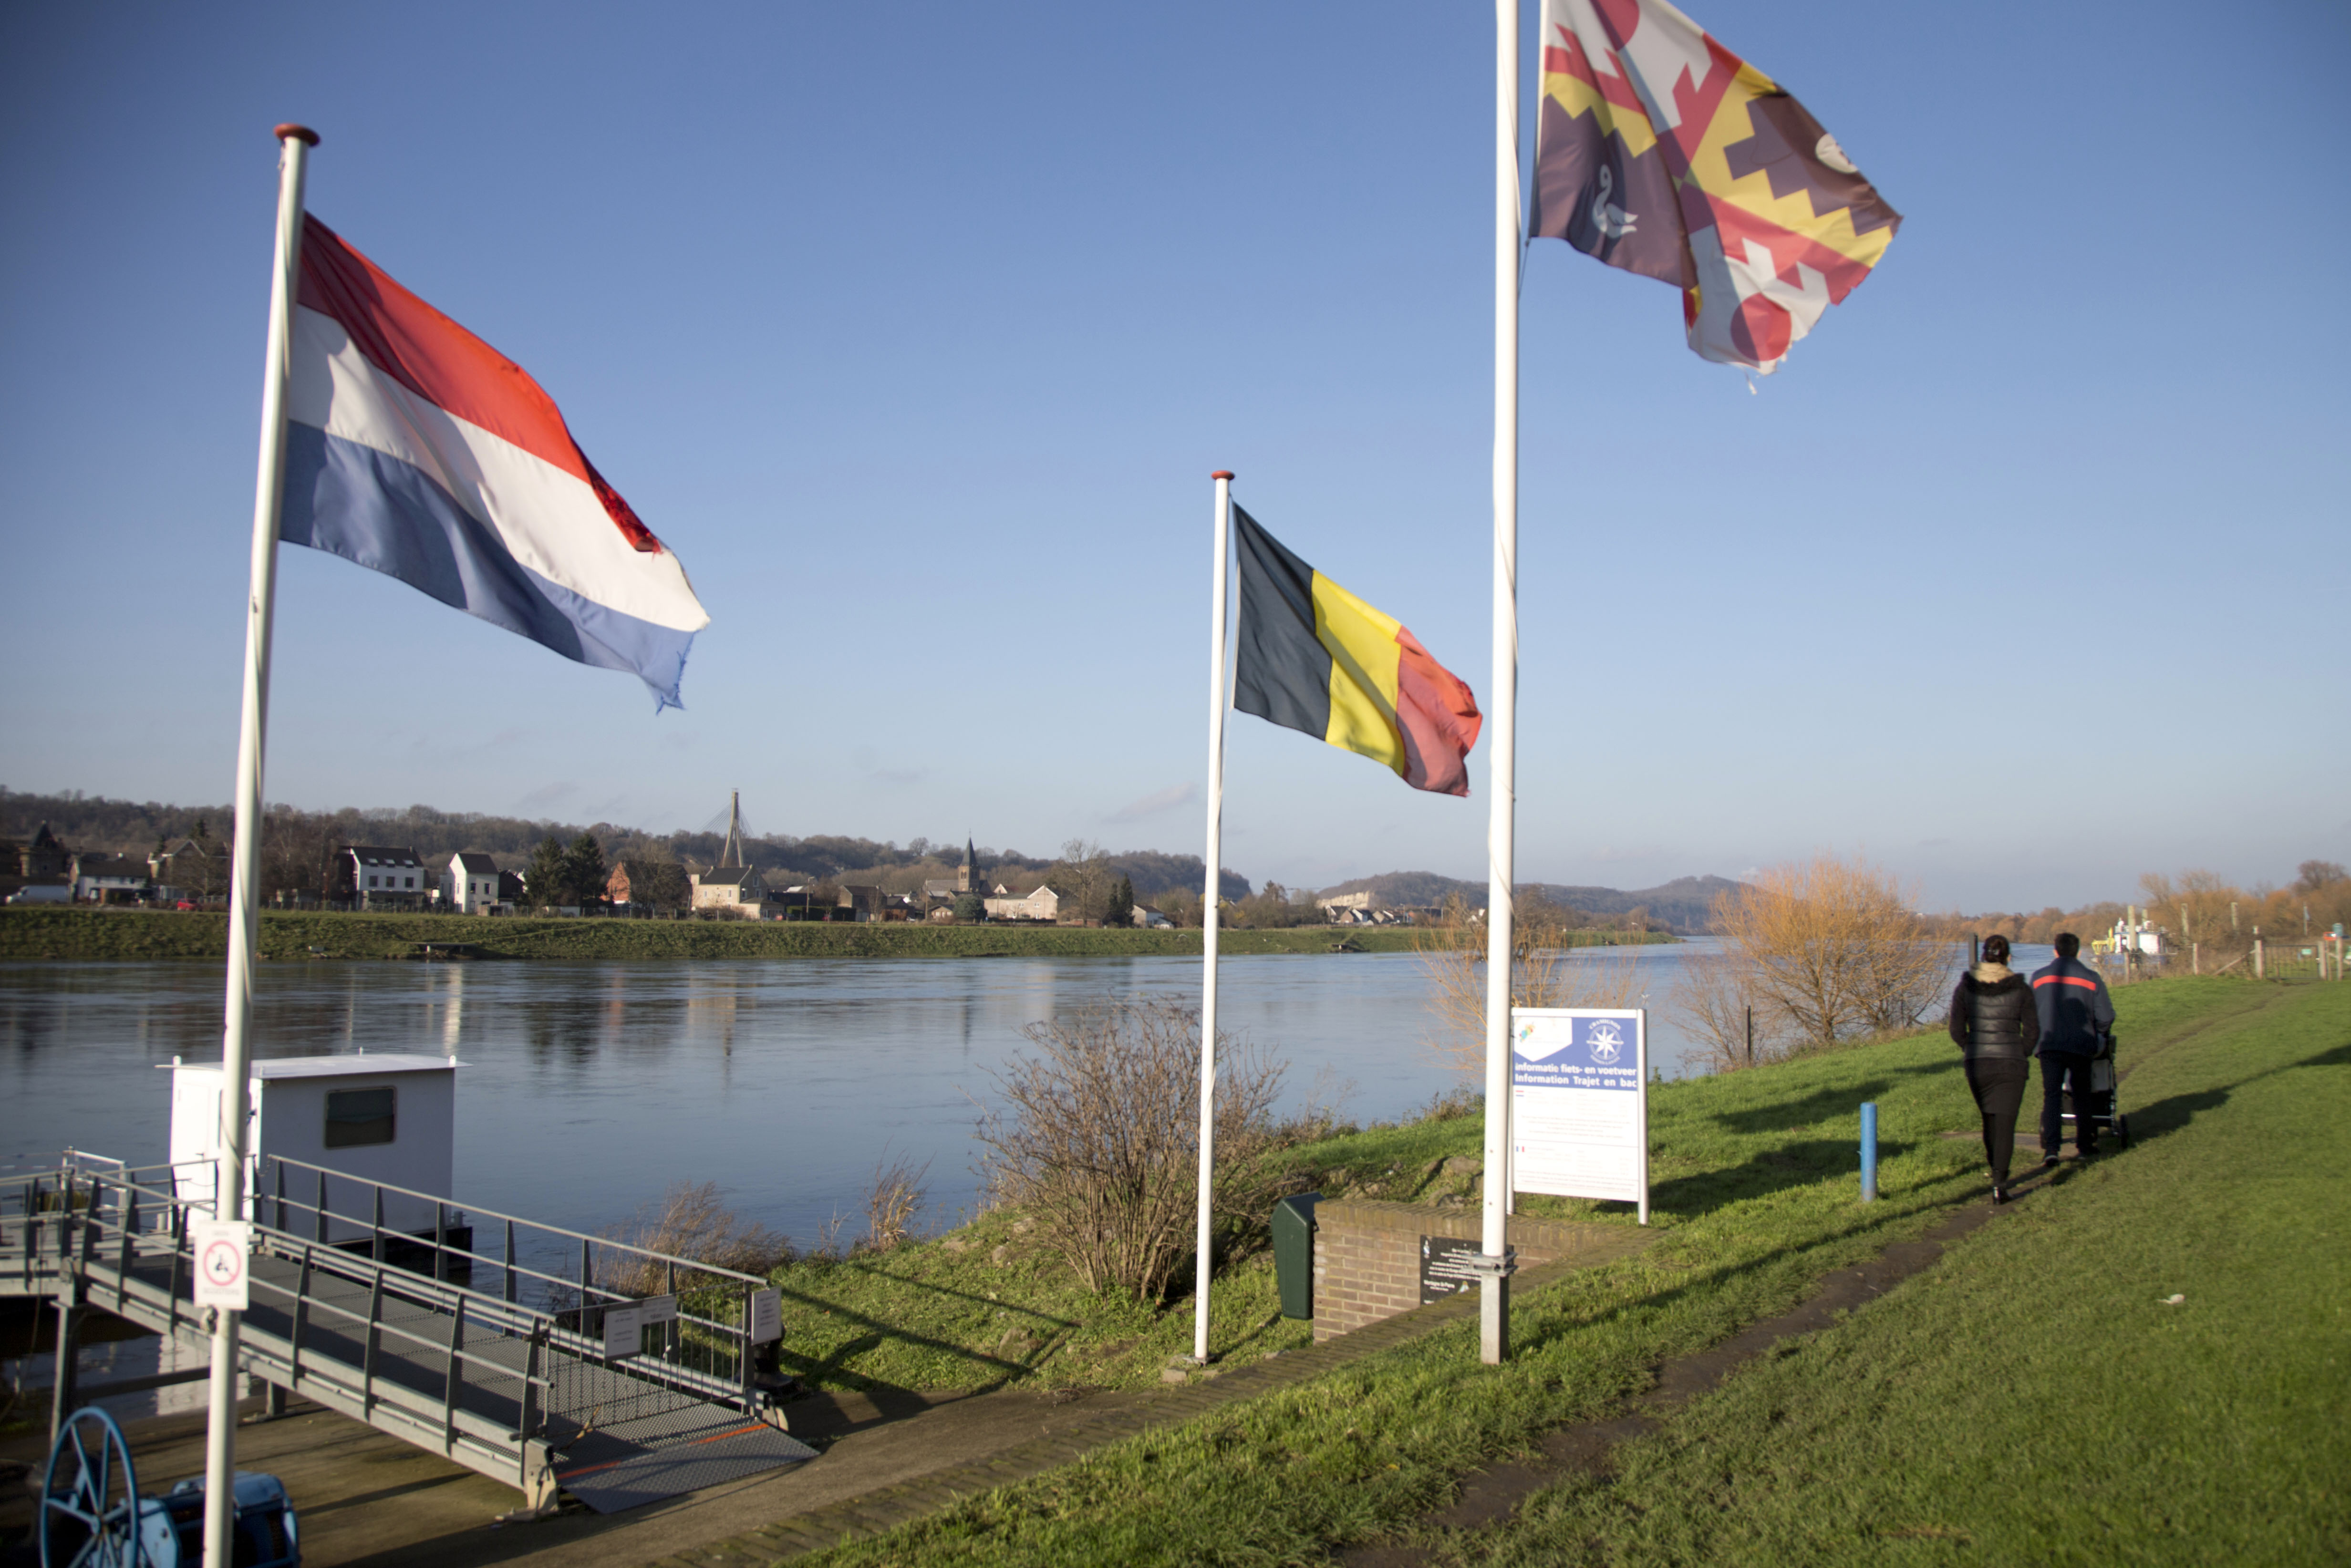 In this photo taken on Monday, December 14, 2015, people walk past Dutch and Belgian flags on the waterfront in Eijsden, Netherlands. Photo: AP